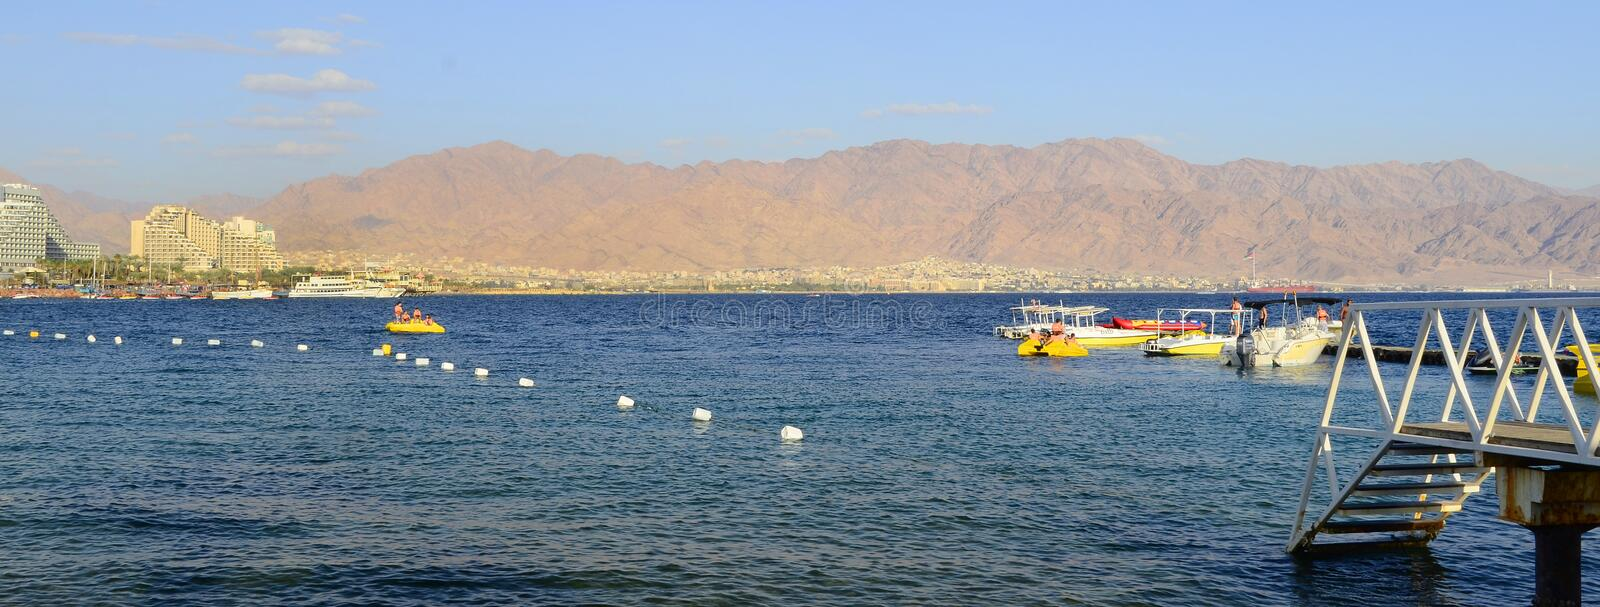 EILAT, ISRAEL - APRIL 11, 2011. Central public beach in Eilat - famous resort city in Israel stock photos